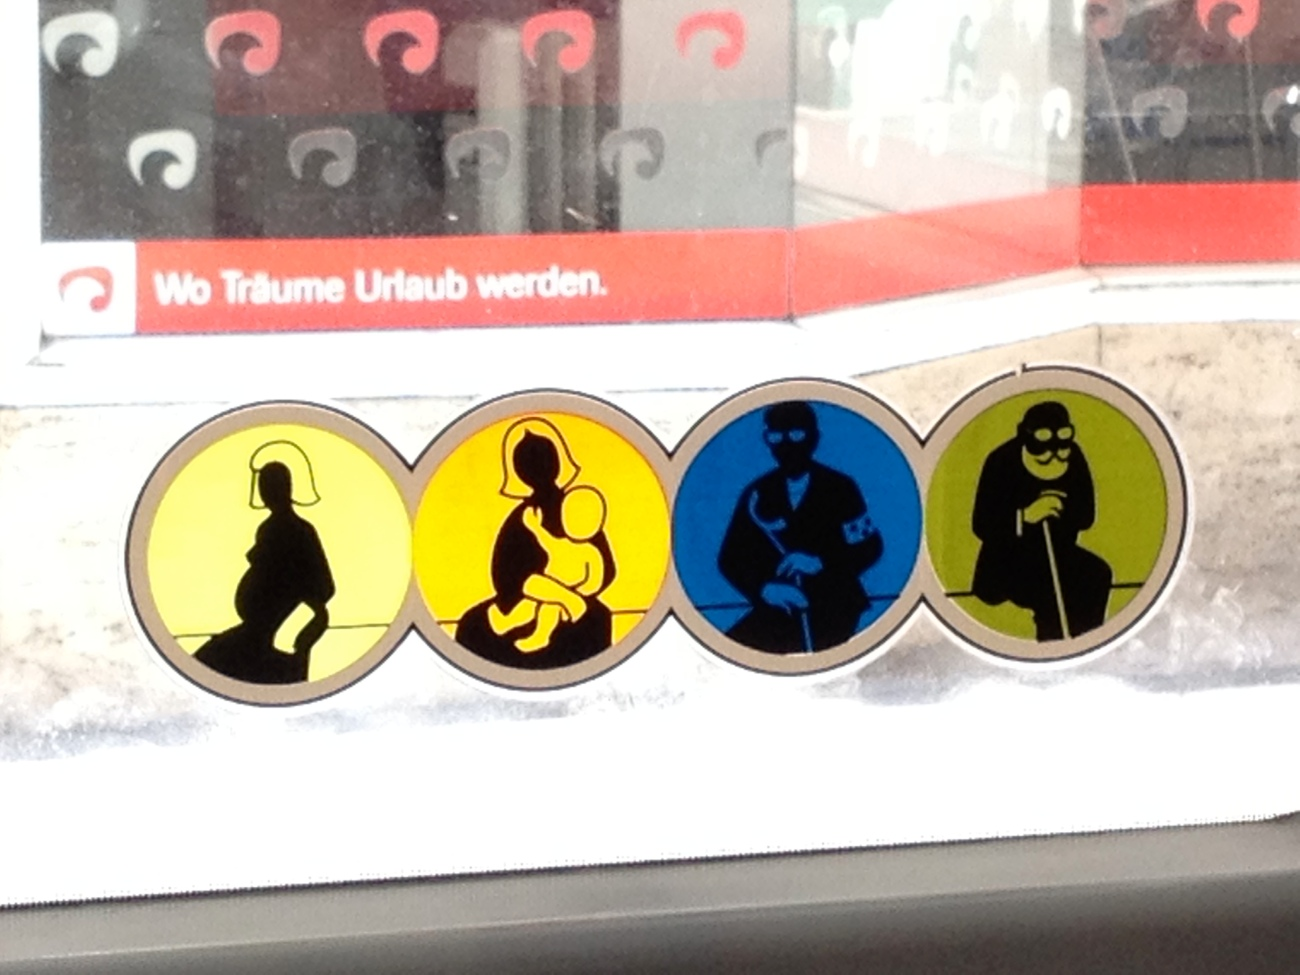 Seats for people with white arms, white babies, white gloves and glasses, and old Michael Jackson fans?